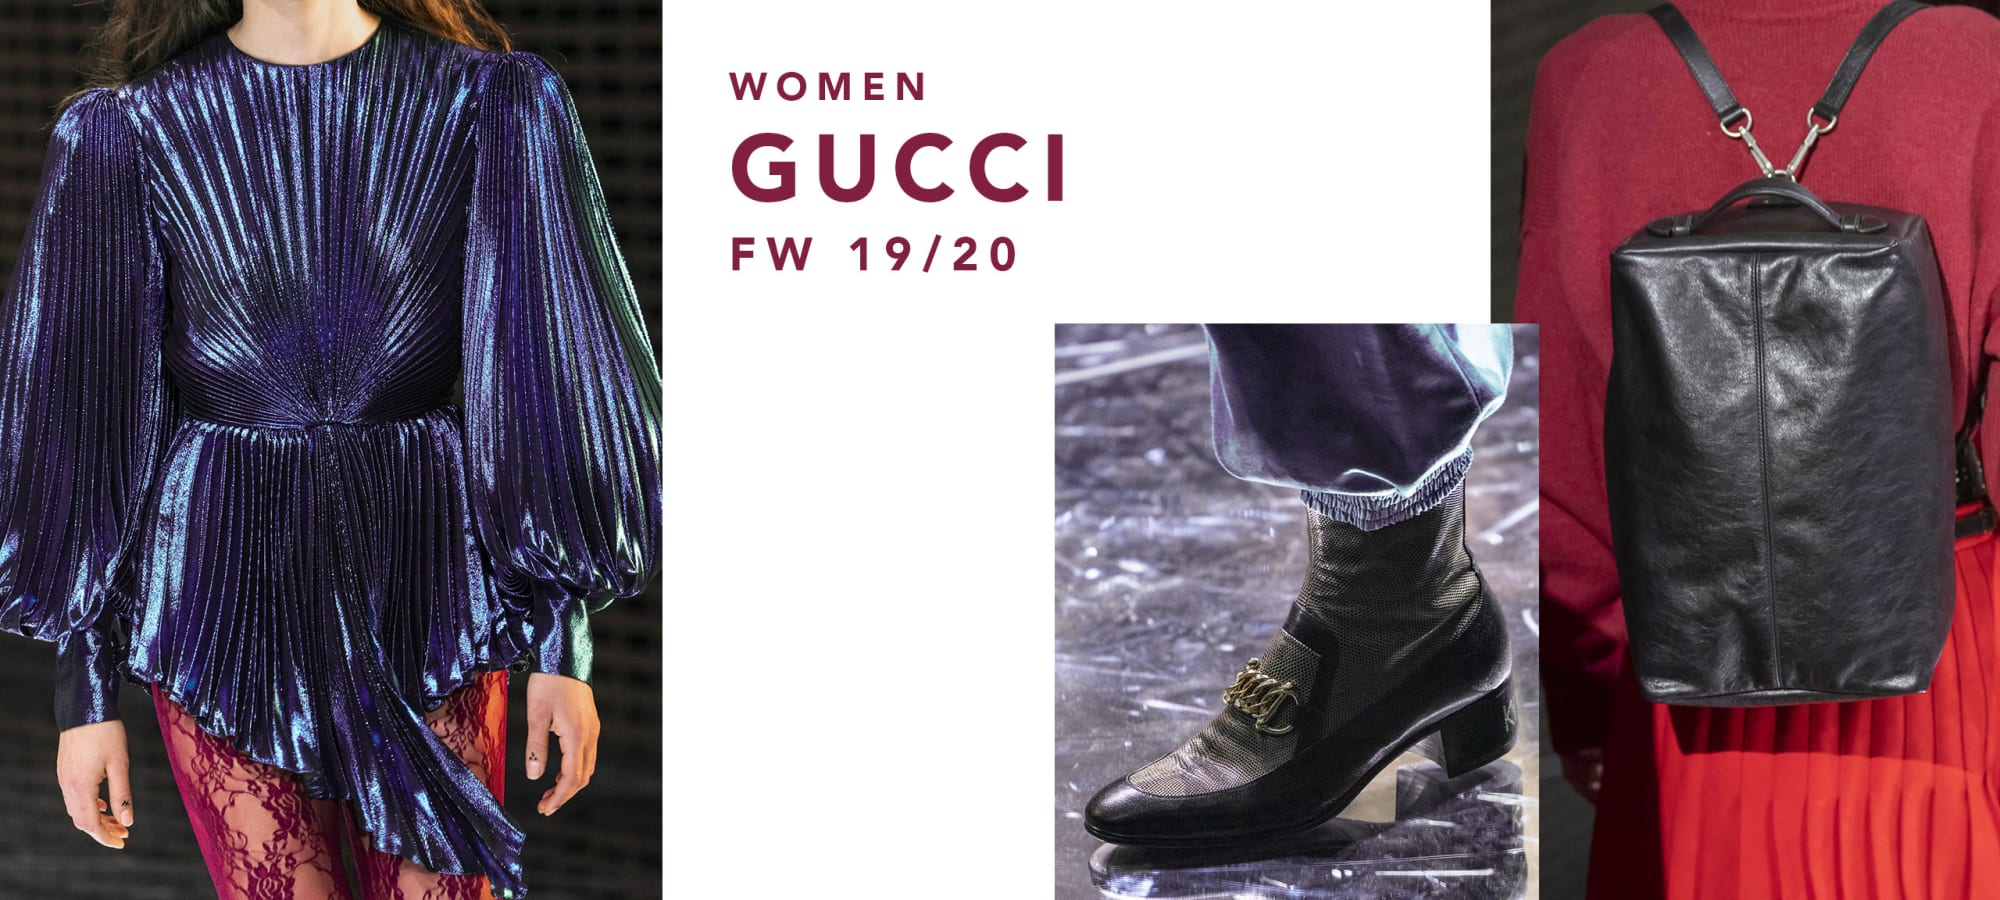 Gucci Women Fall Winter 19/20 by italist